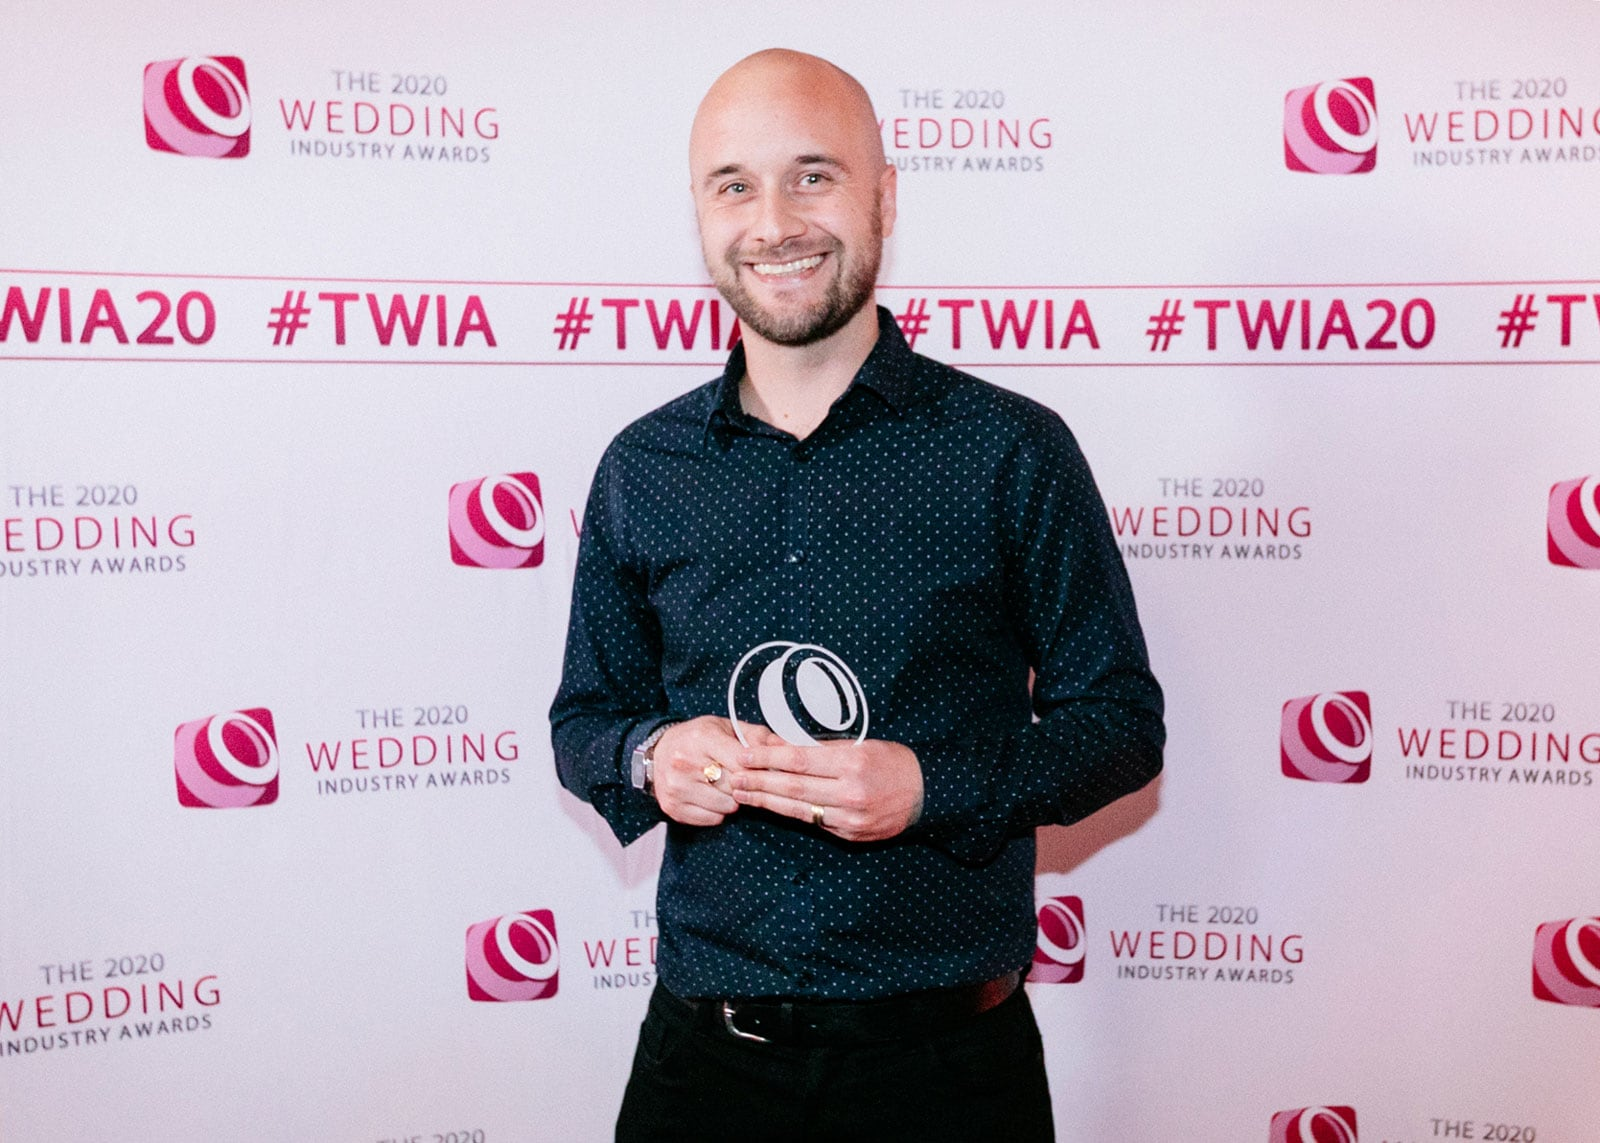 Winner of Best Wedding Photographer West Midlands